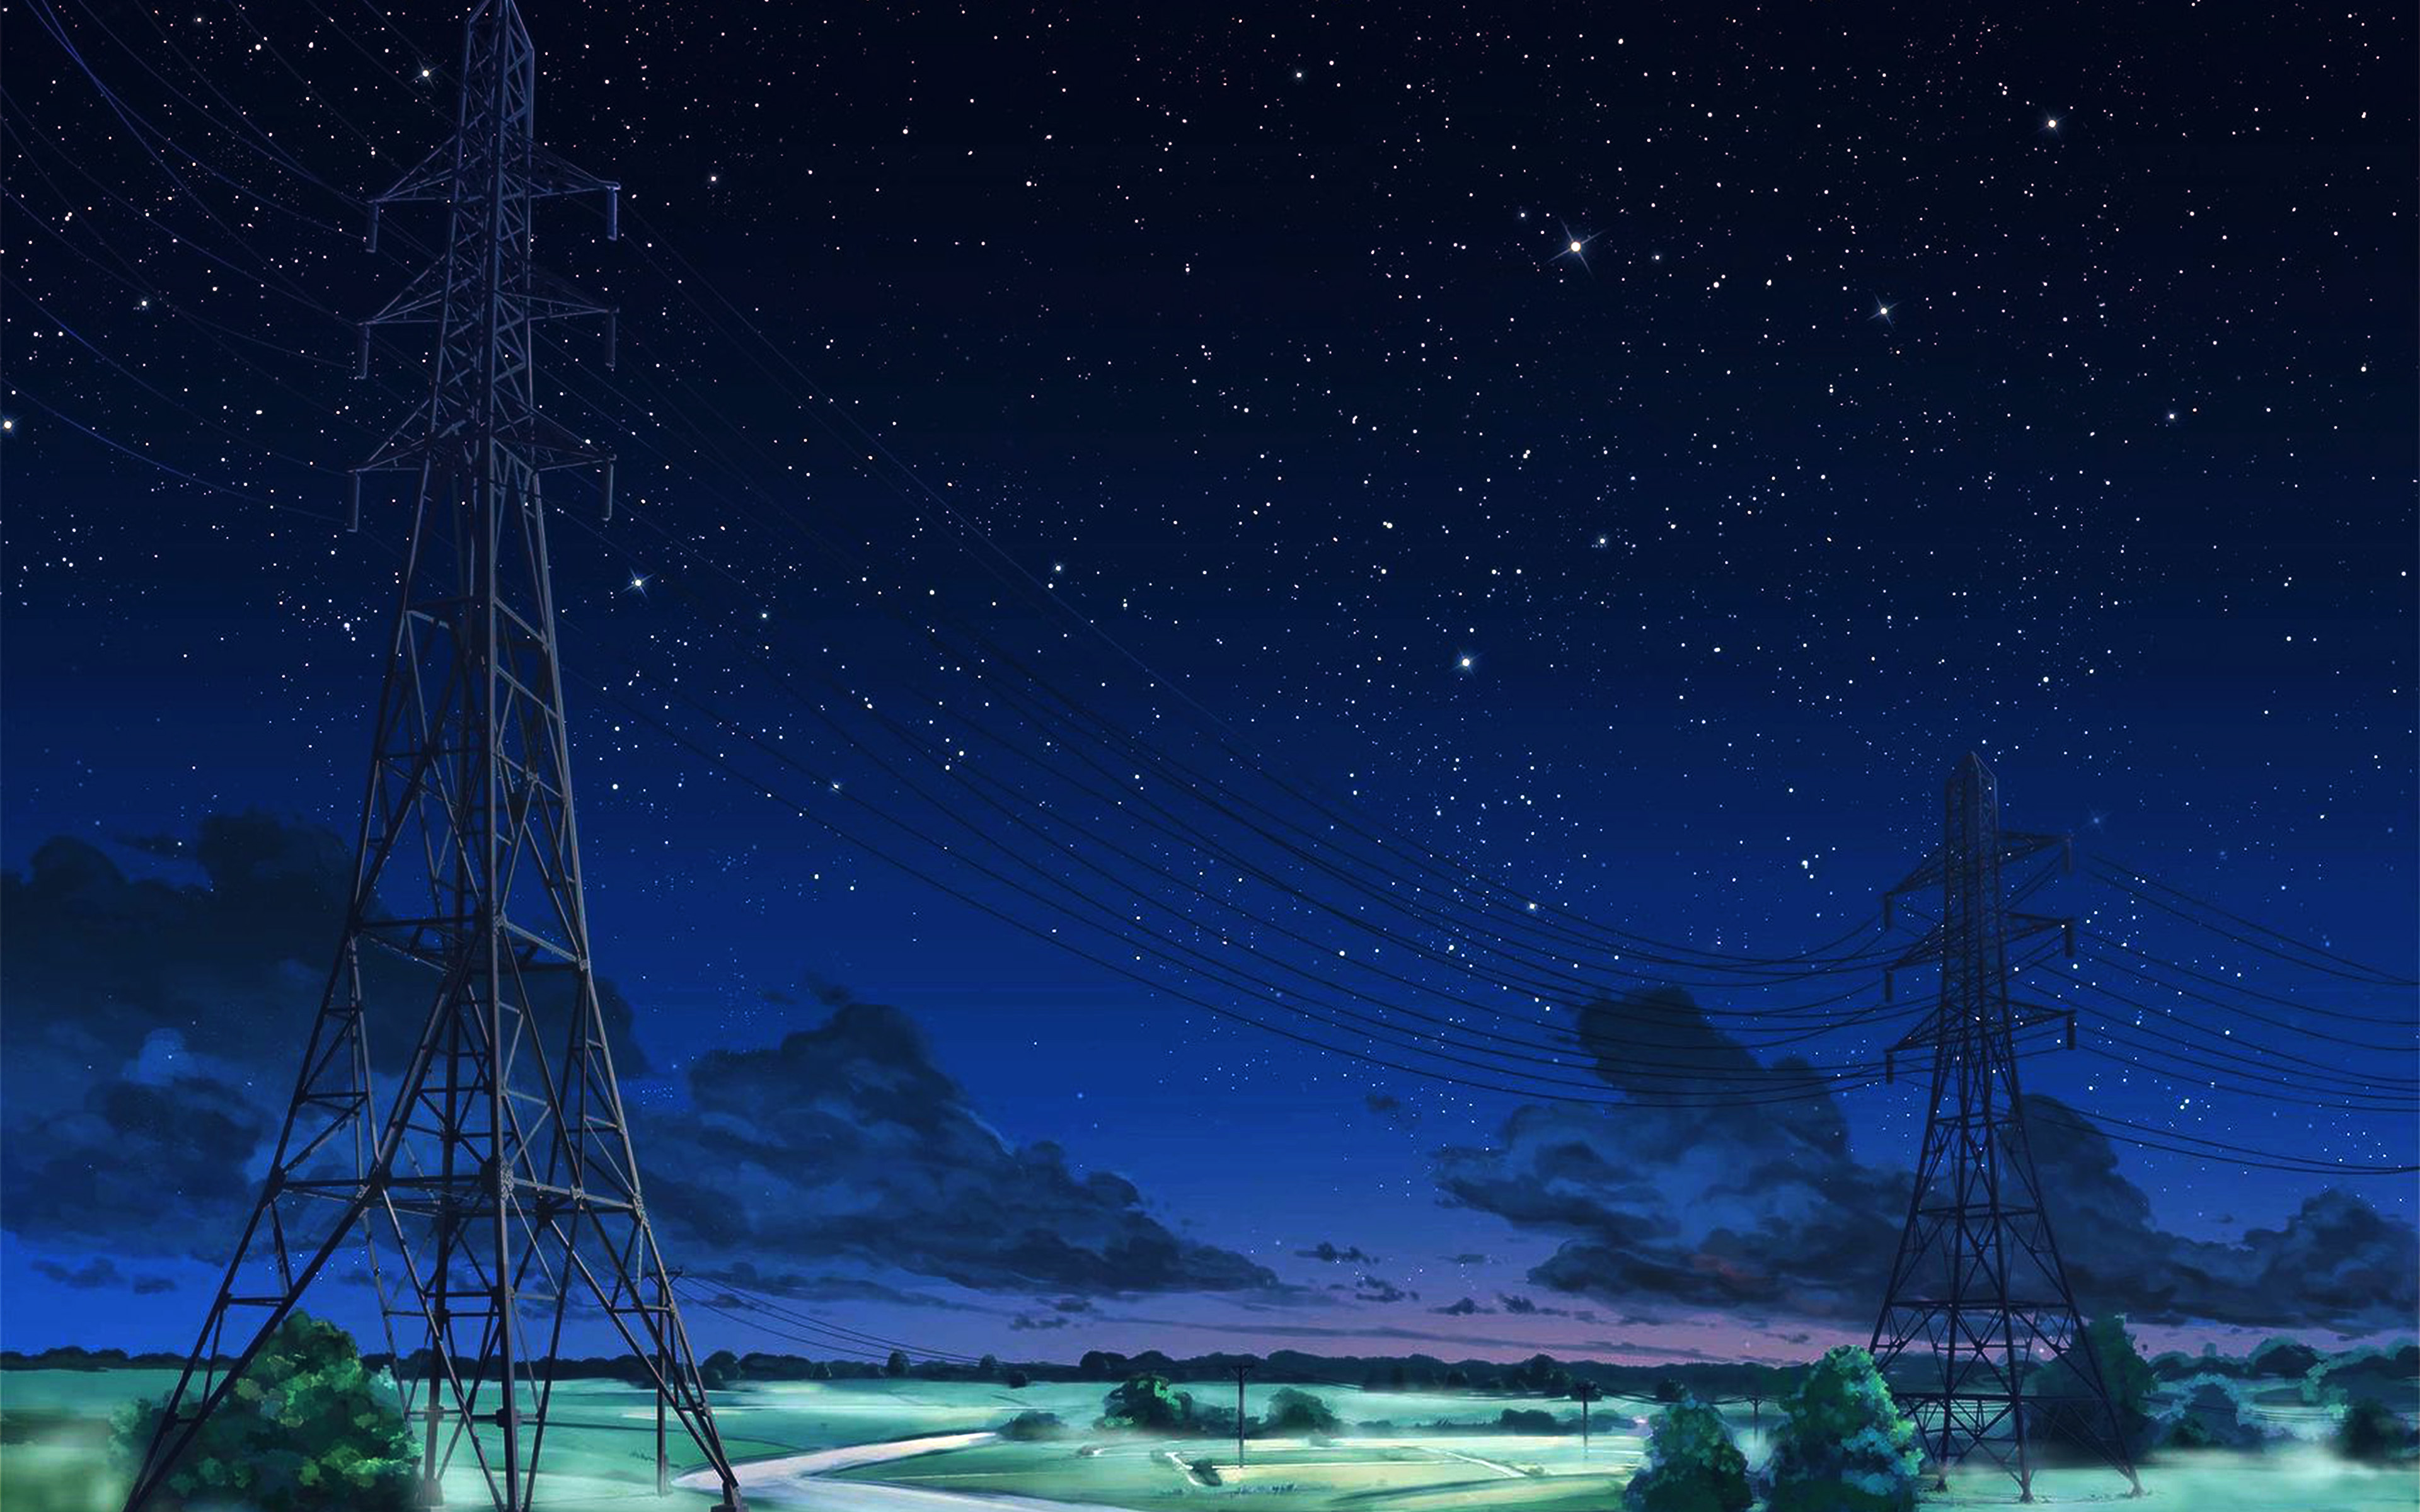 Aw16 Arseniy Chebynkin Night Sky Star Blue Illustration Art Anime Dark Wallpaper